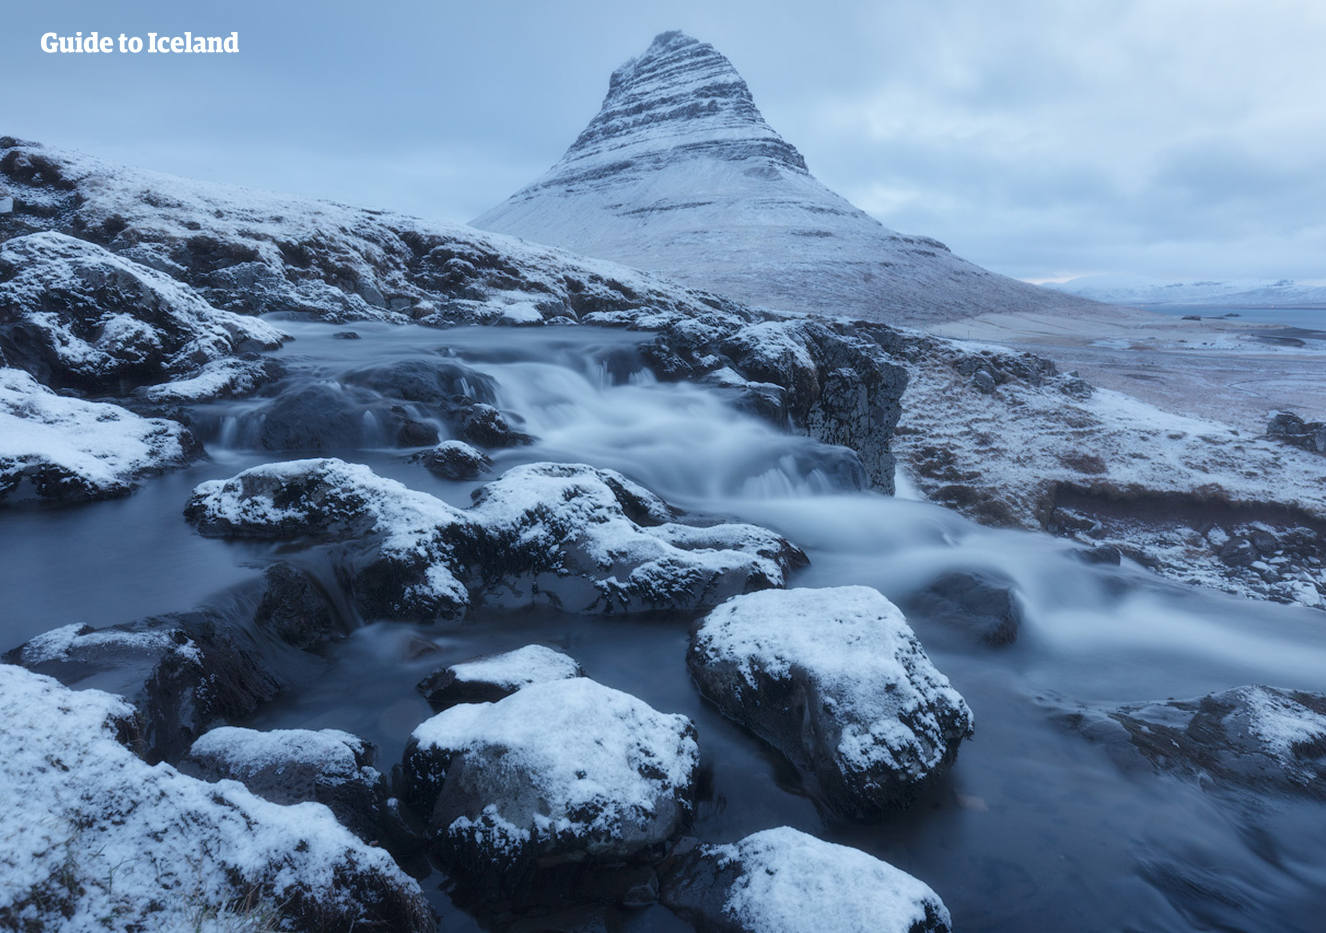 While the East Fjords and Highlands are hard to navigate in winter, the sites of the Snæfellsnes Peninsula, such as Mount Kirkjufell, are still easy to access.